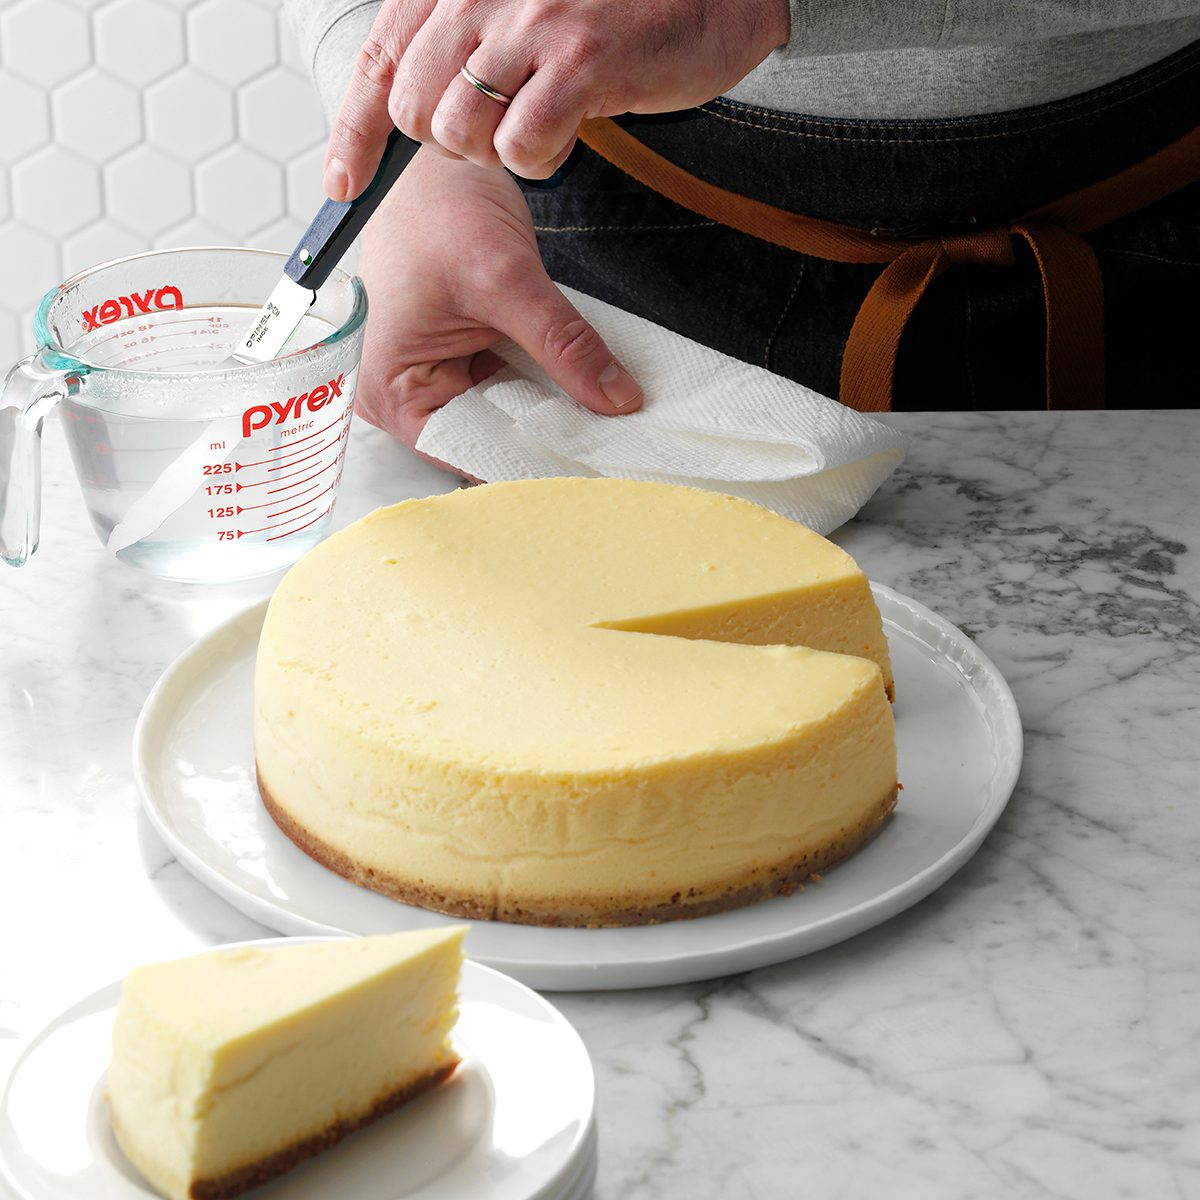 THGKH19, Hot knife to cut cheesecake